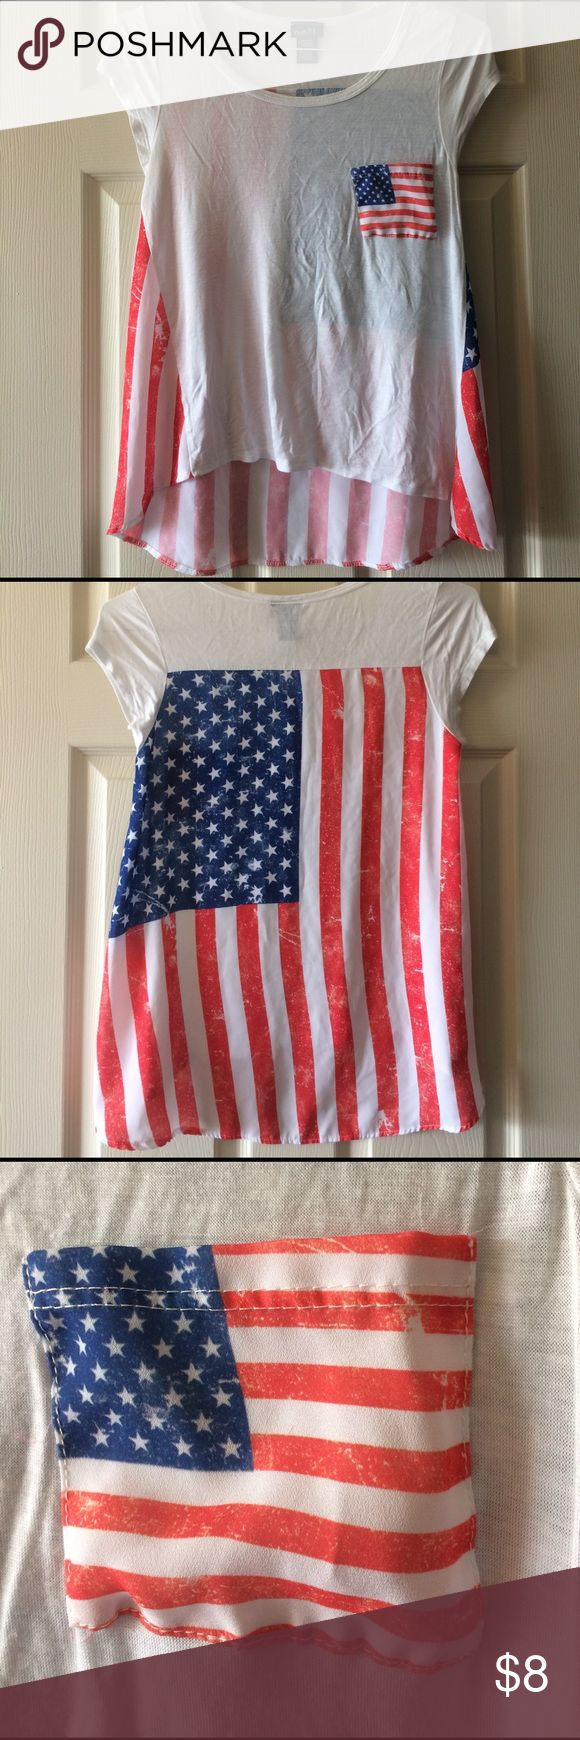 American flag women's shirt! Perfect for country concerts or 4th of July! Size small. Longer in the back as shown in picture. Worn ONCE. Rue 21 Tops Tees - Short Sleeve